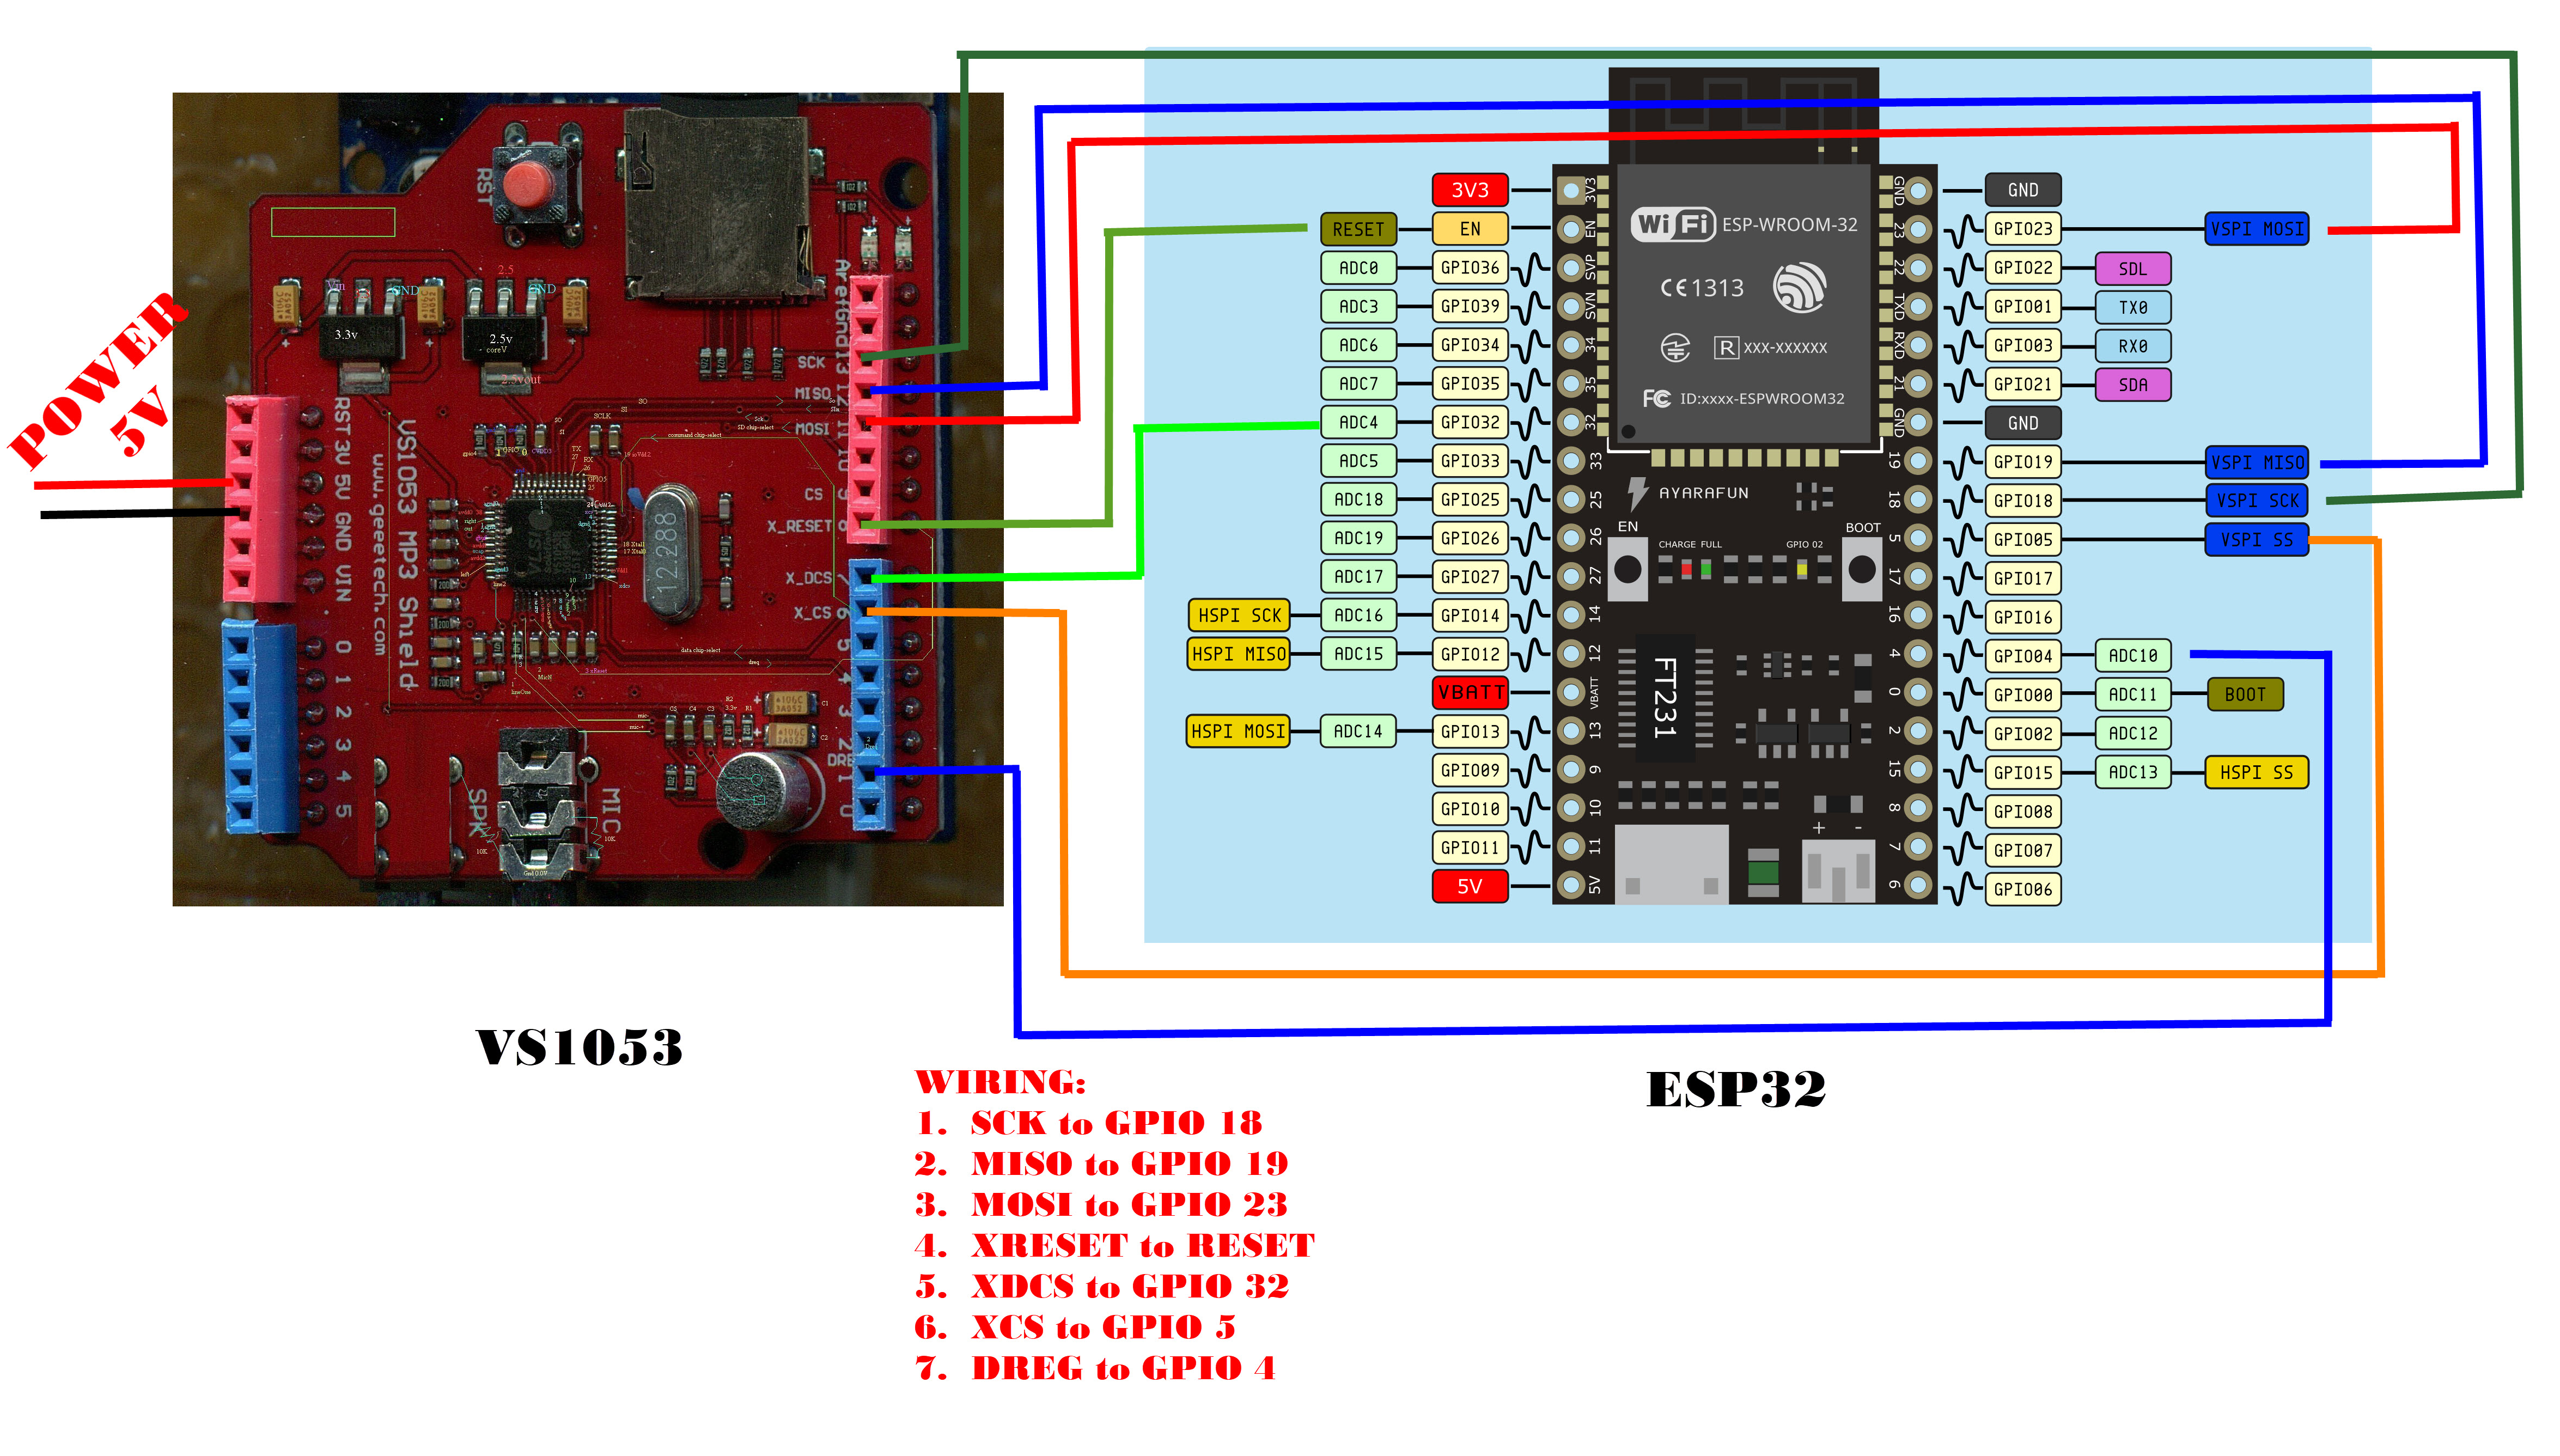 How to install the Ka-Radio32 to ESP32 board? [SOLVED